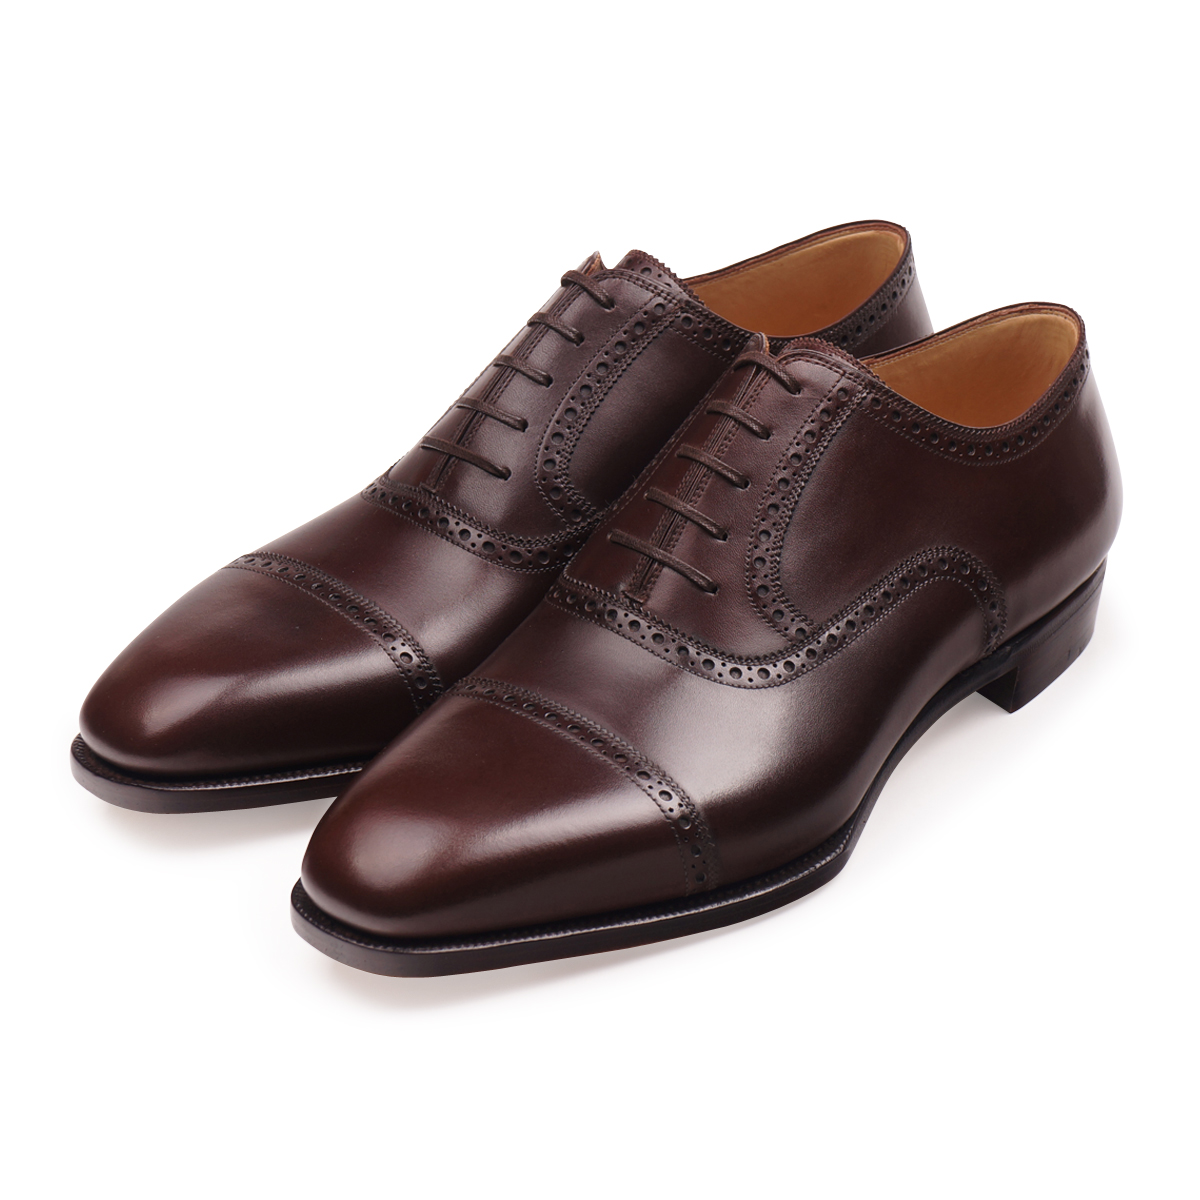 Dark Brown Box Calf Cap Toe Oxfords